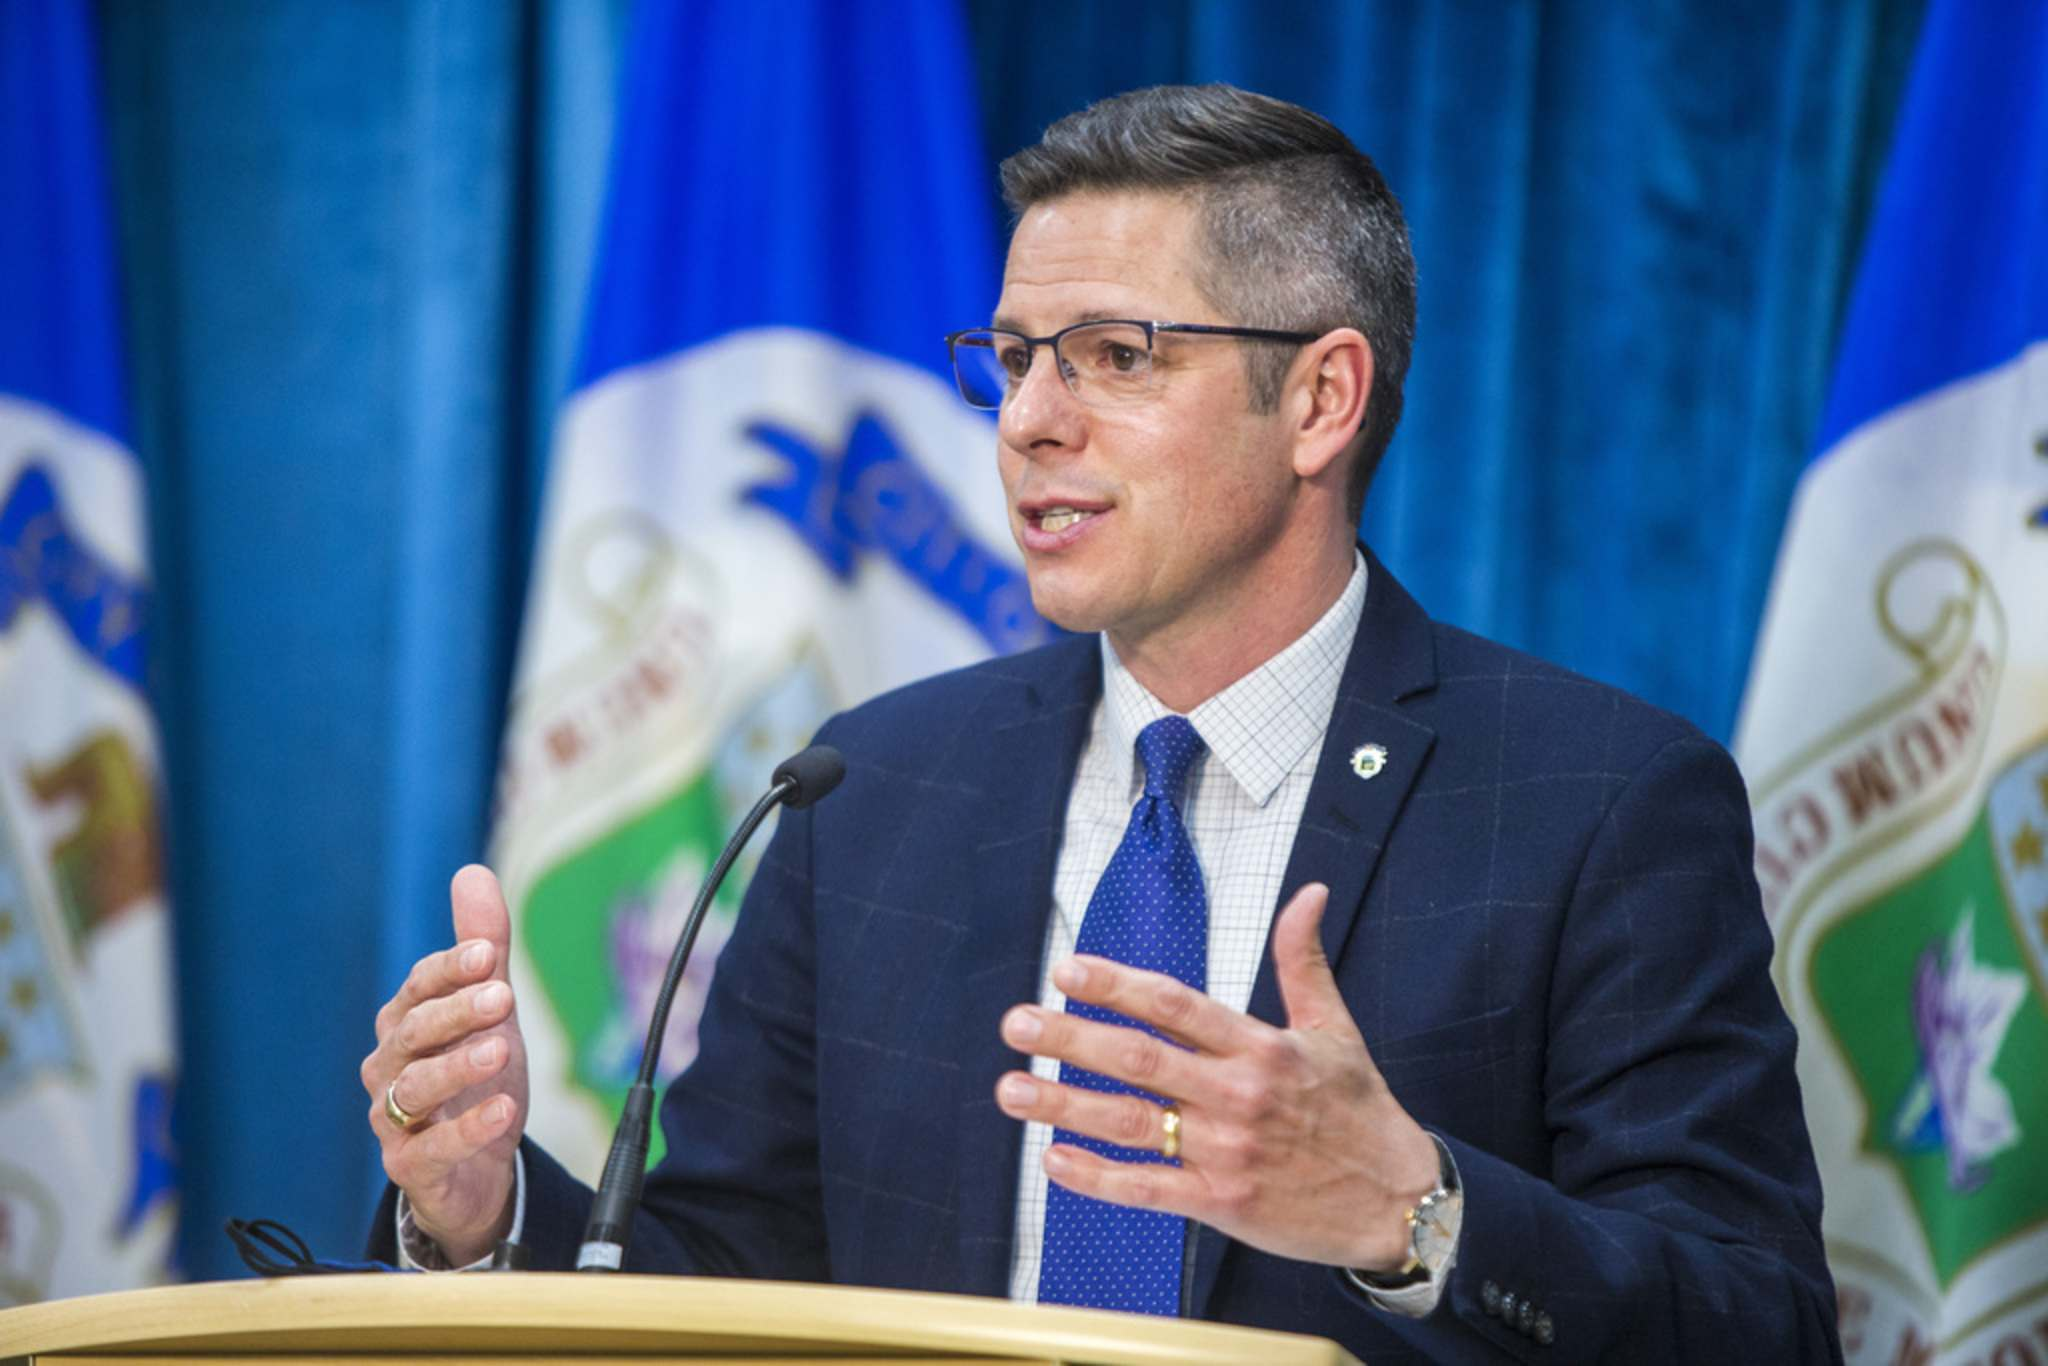 Winnipeg Mayor Brian Bowman championed the electornic voting system as a move to increase transparency and accountability.</p><p>(Mikaela MacKenzie / Winnipeg Free Press files)</p>